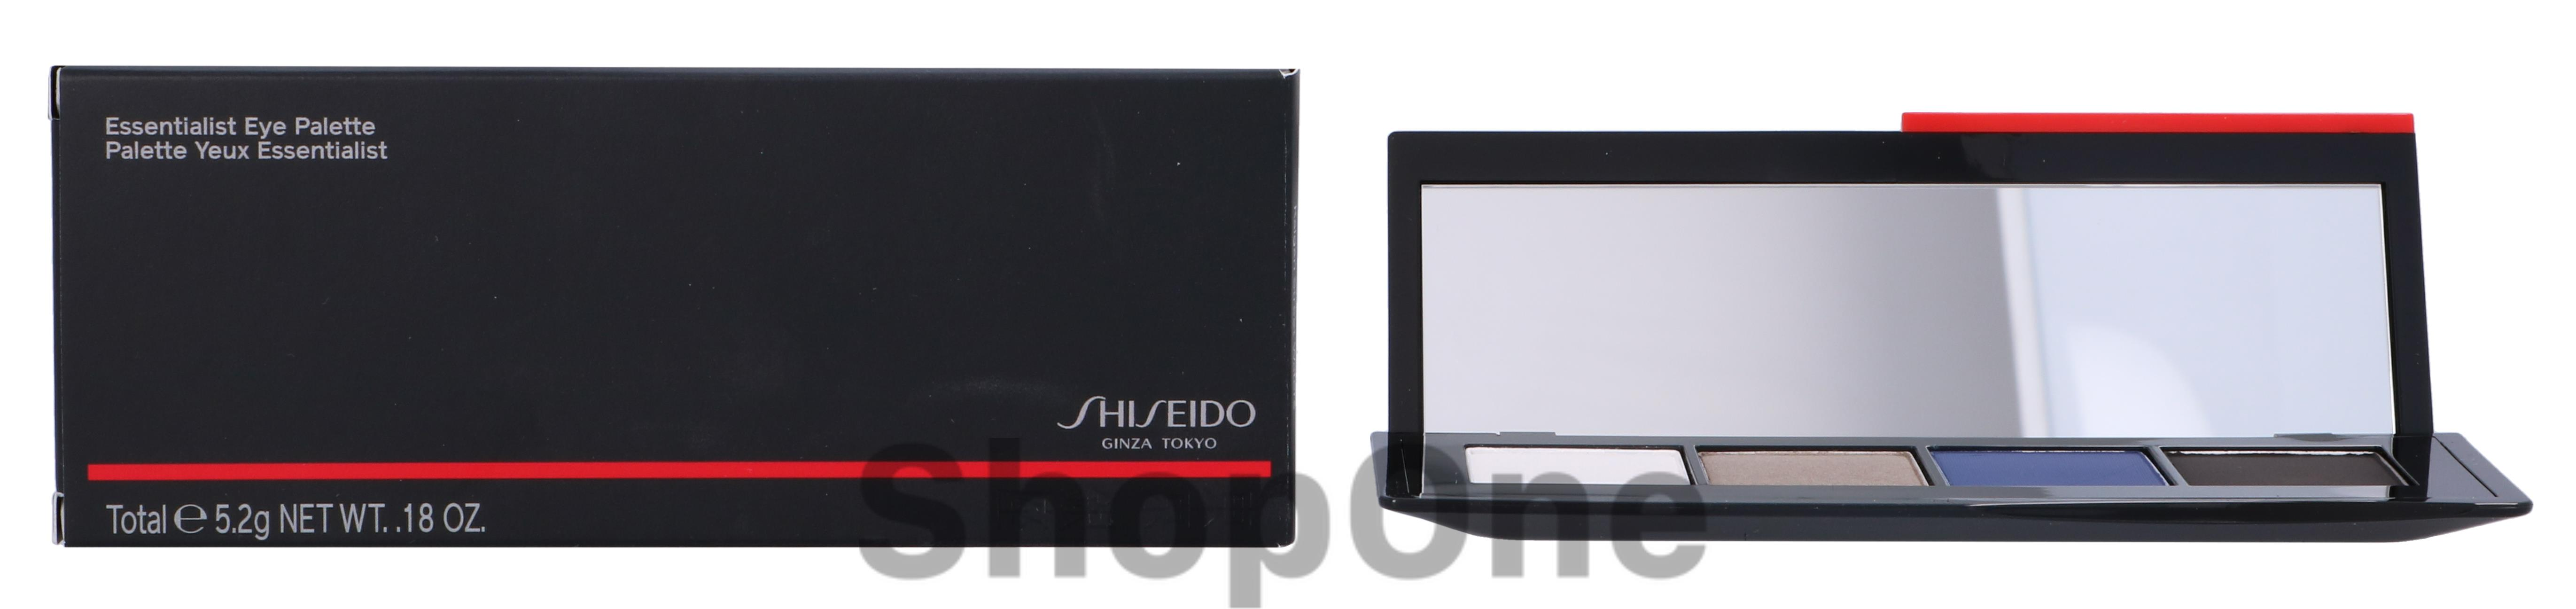 Image of   Essentialist Eye Pallet 5 gr fra Shiseido